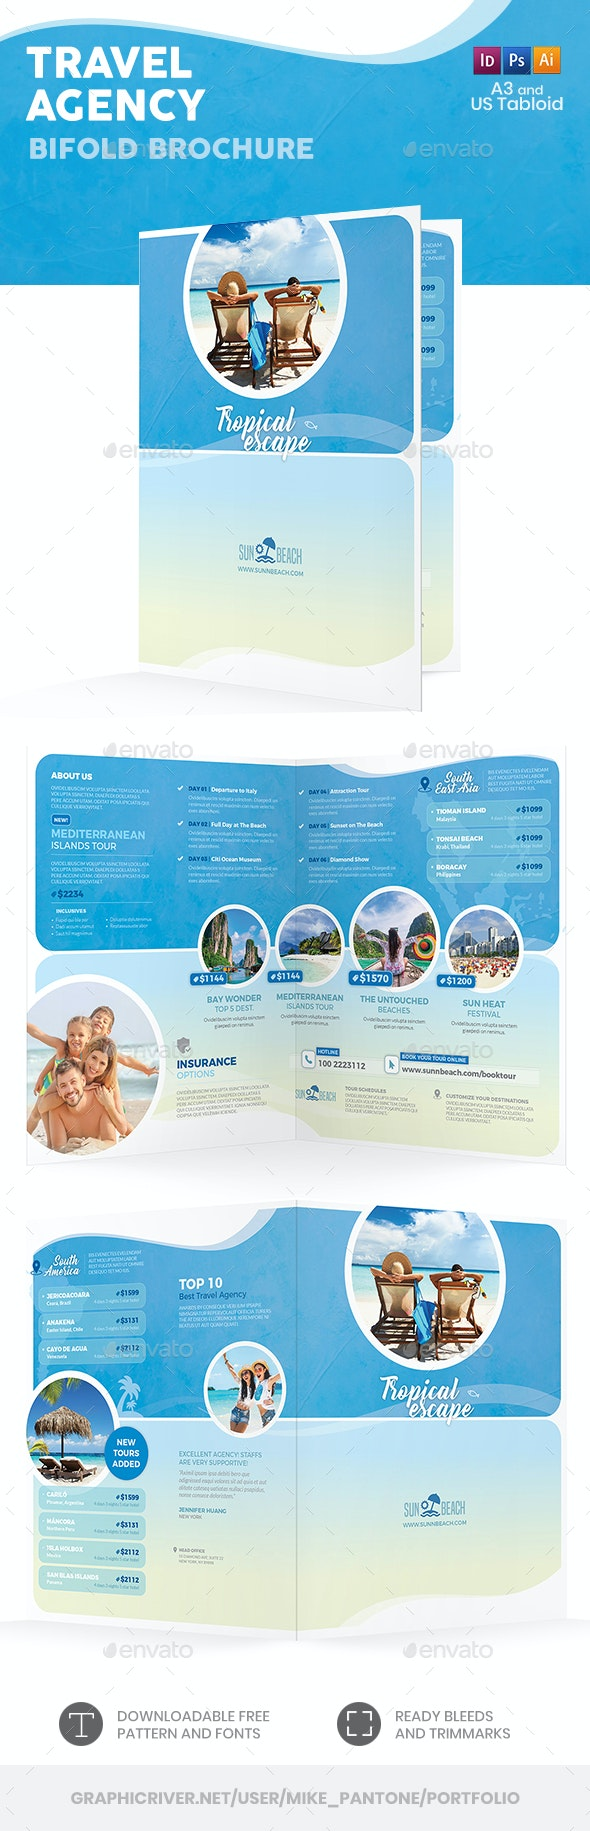 Travel Agency Bifold / Halffold Brochure 5 by Mike_pantone